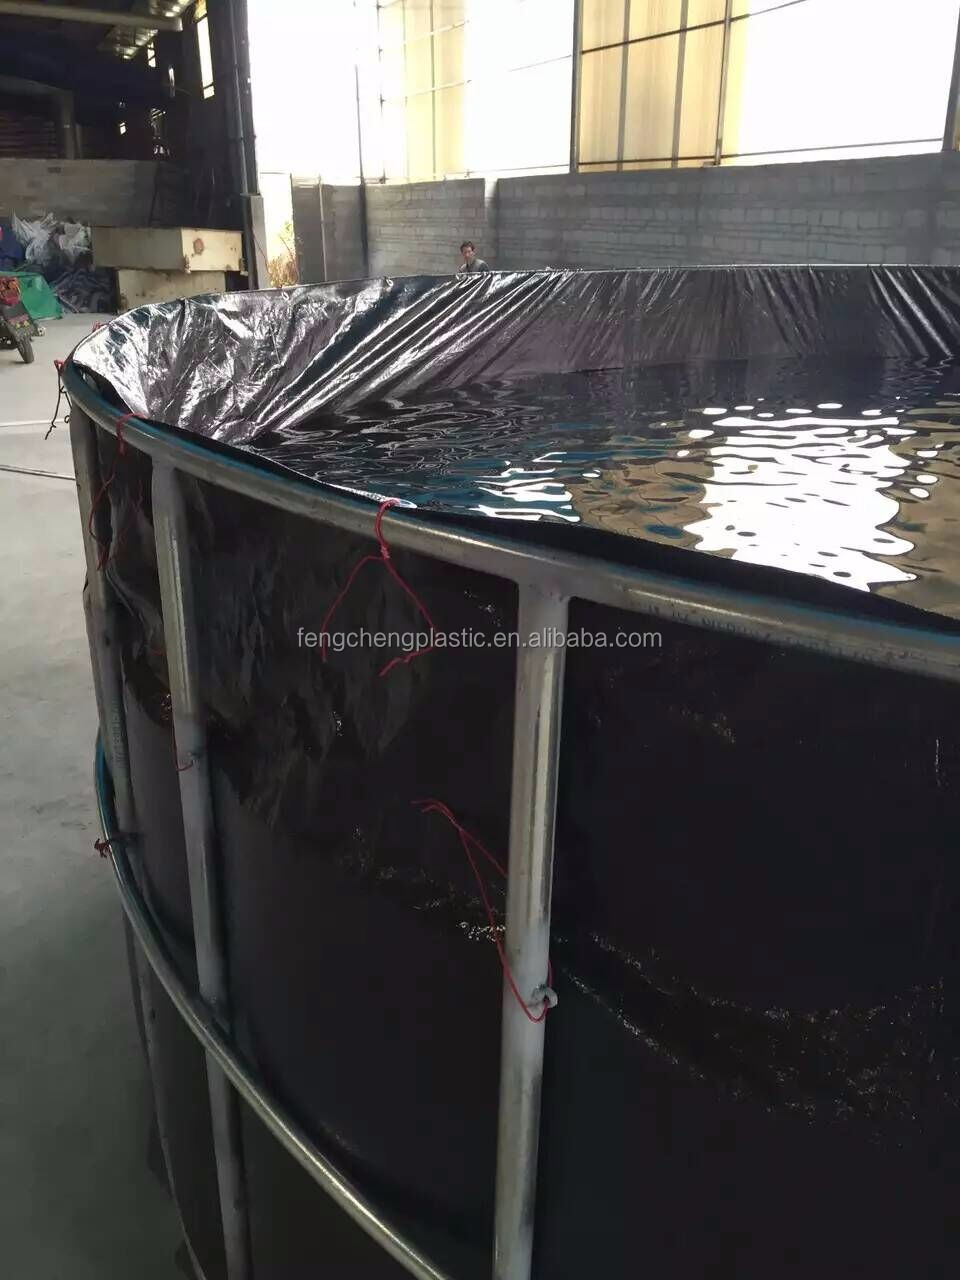 Reinforced Woven Polyethylene Pond Liners Thick Black